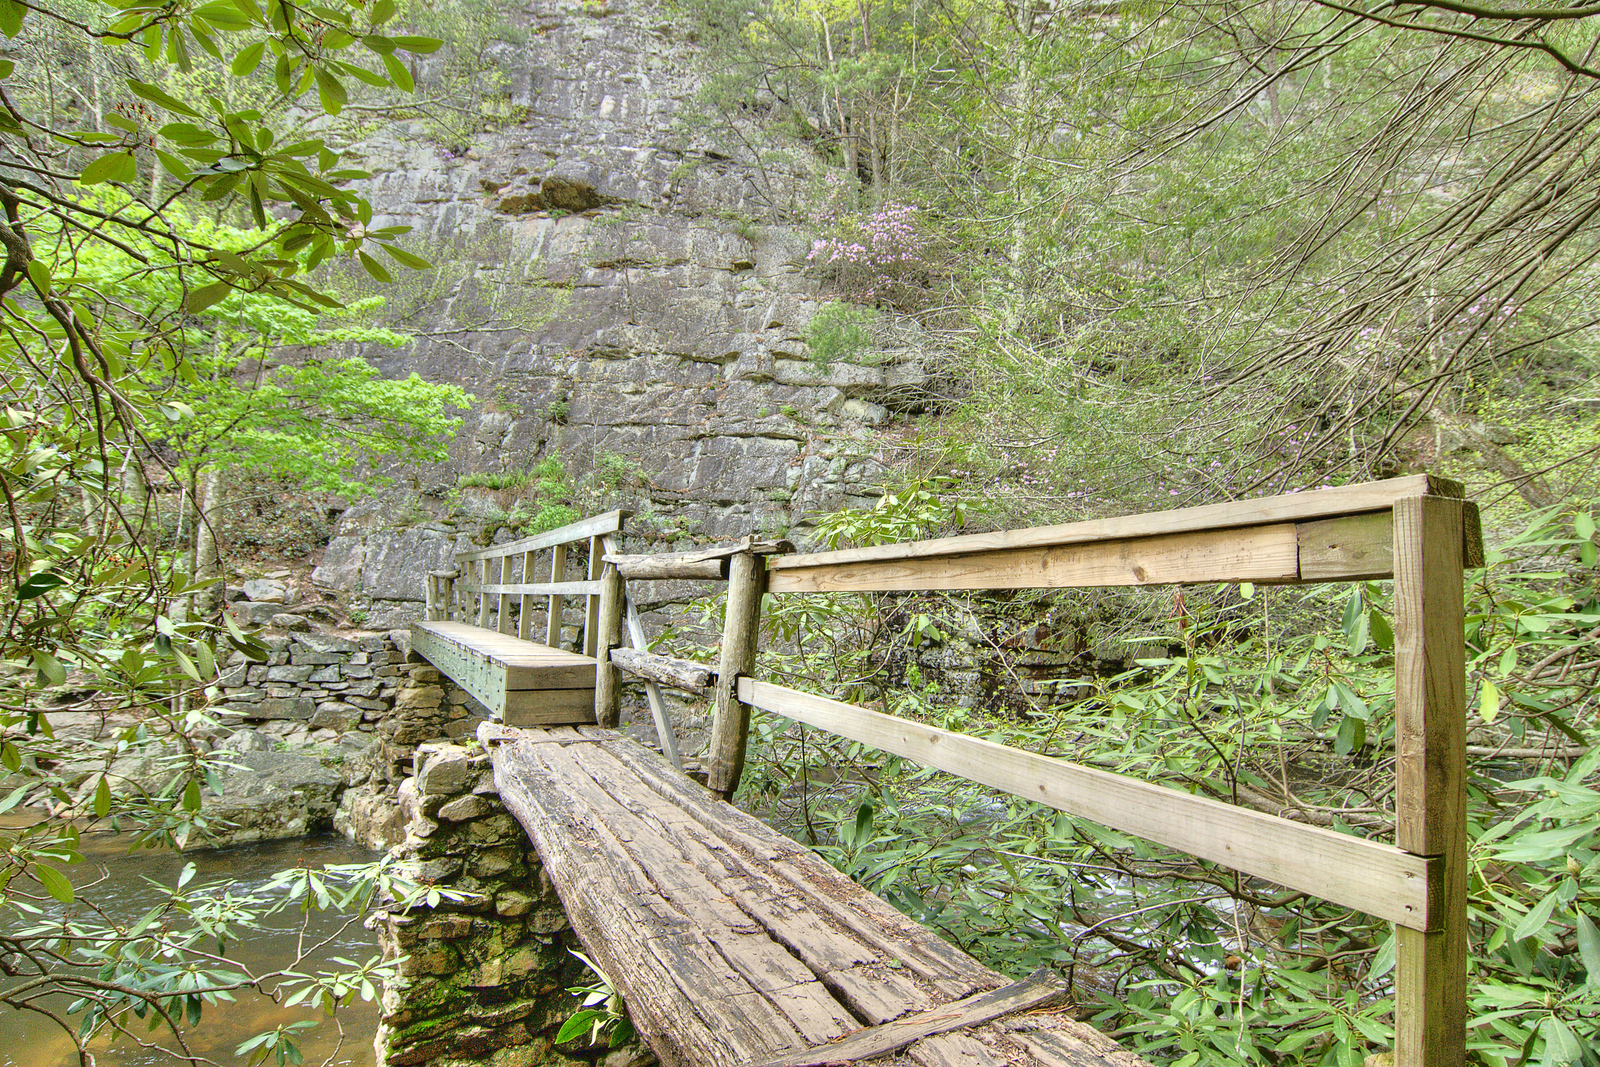 A wooden bridge crosses the Laurel Forks River facing a towering rock wall near Mile 413 on the Appalachian Trail near the Laurel Gorge in TN on Friday, April 27, 2012. Copyright 2012 Jason Barnette